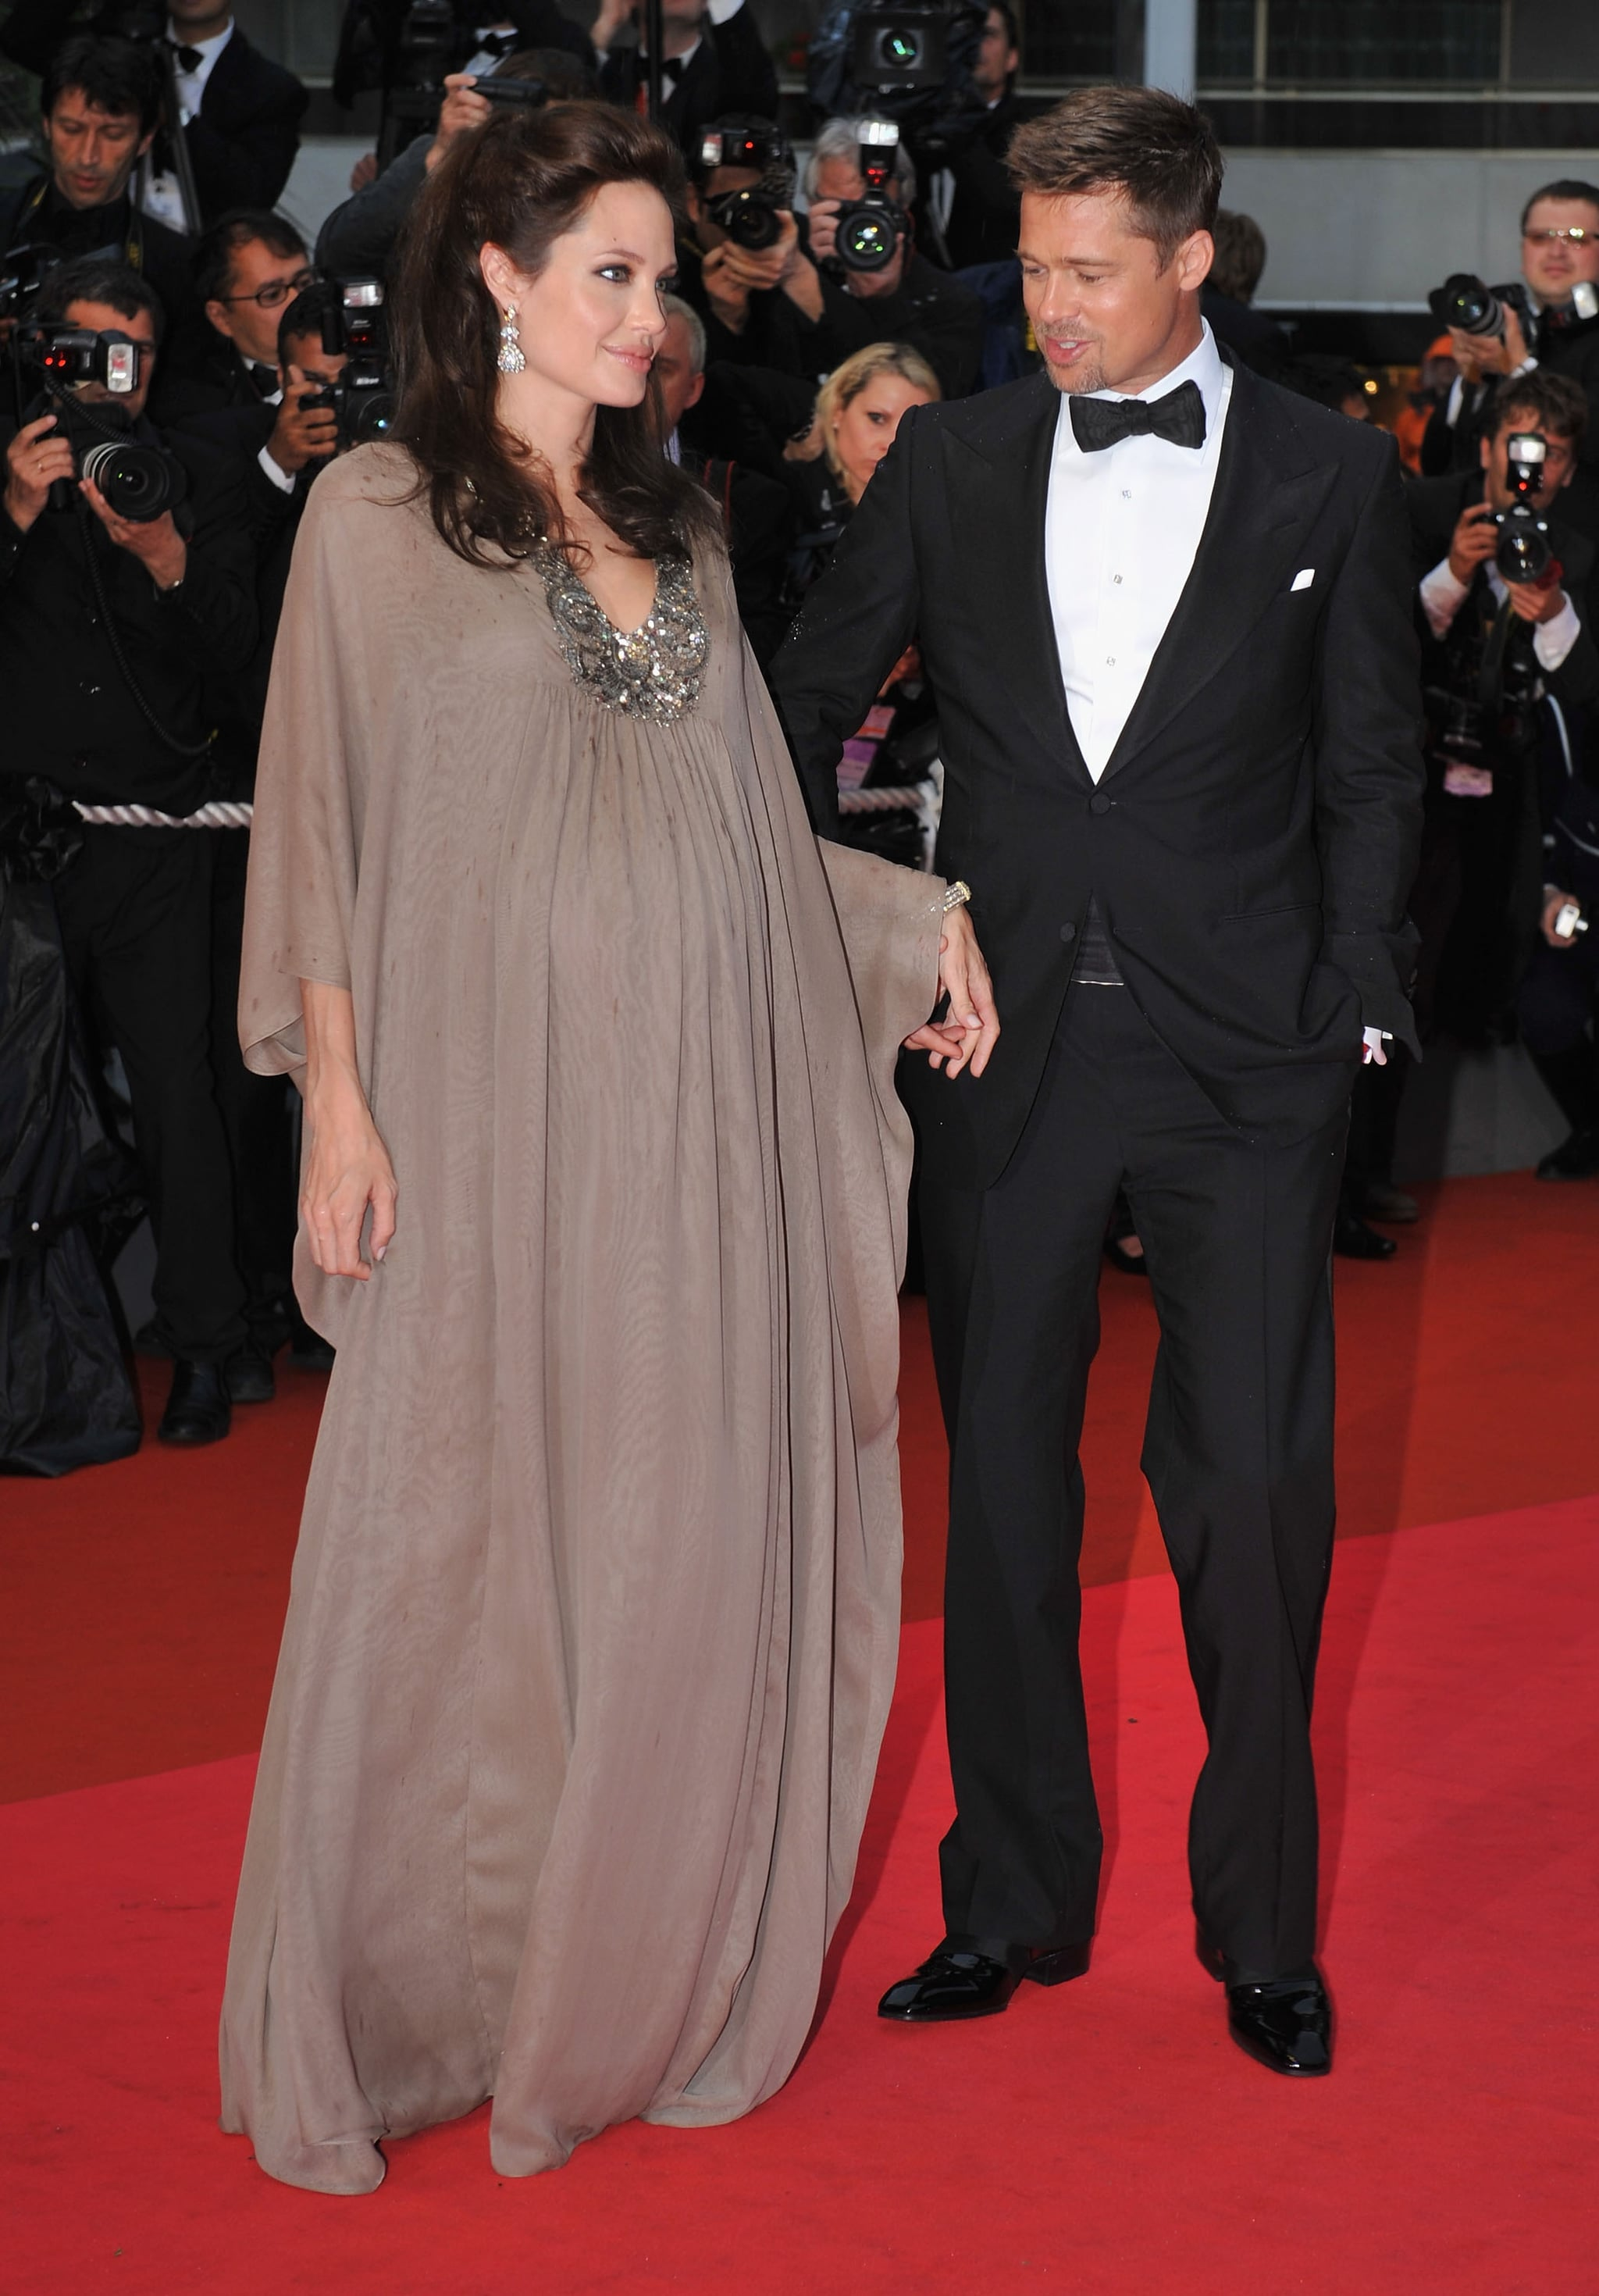 Brad Pitt smiled looking at Angelina Jolie's baby bump at the 2008 Cannes Film Festival screening of her drama Changeling.